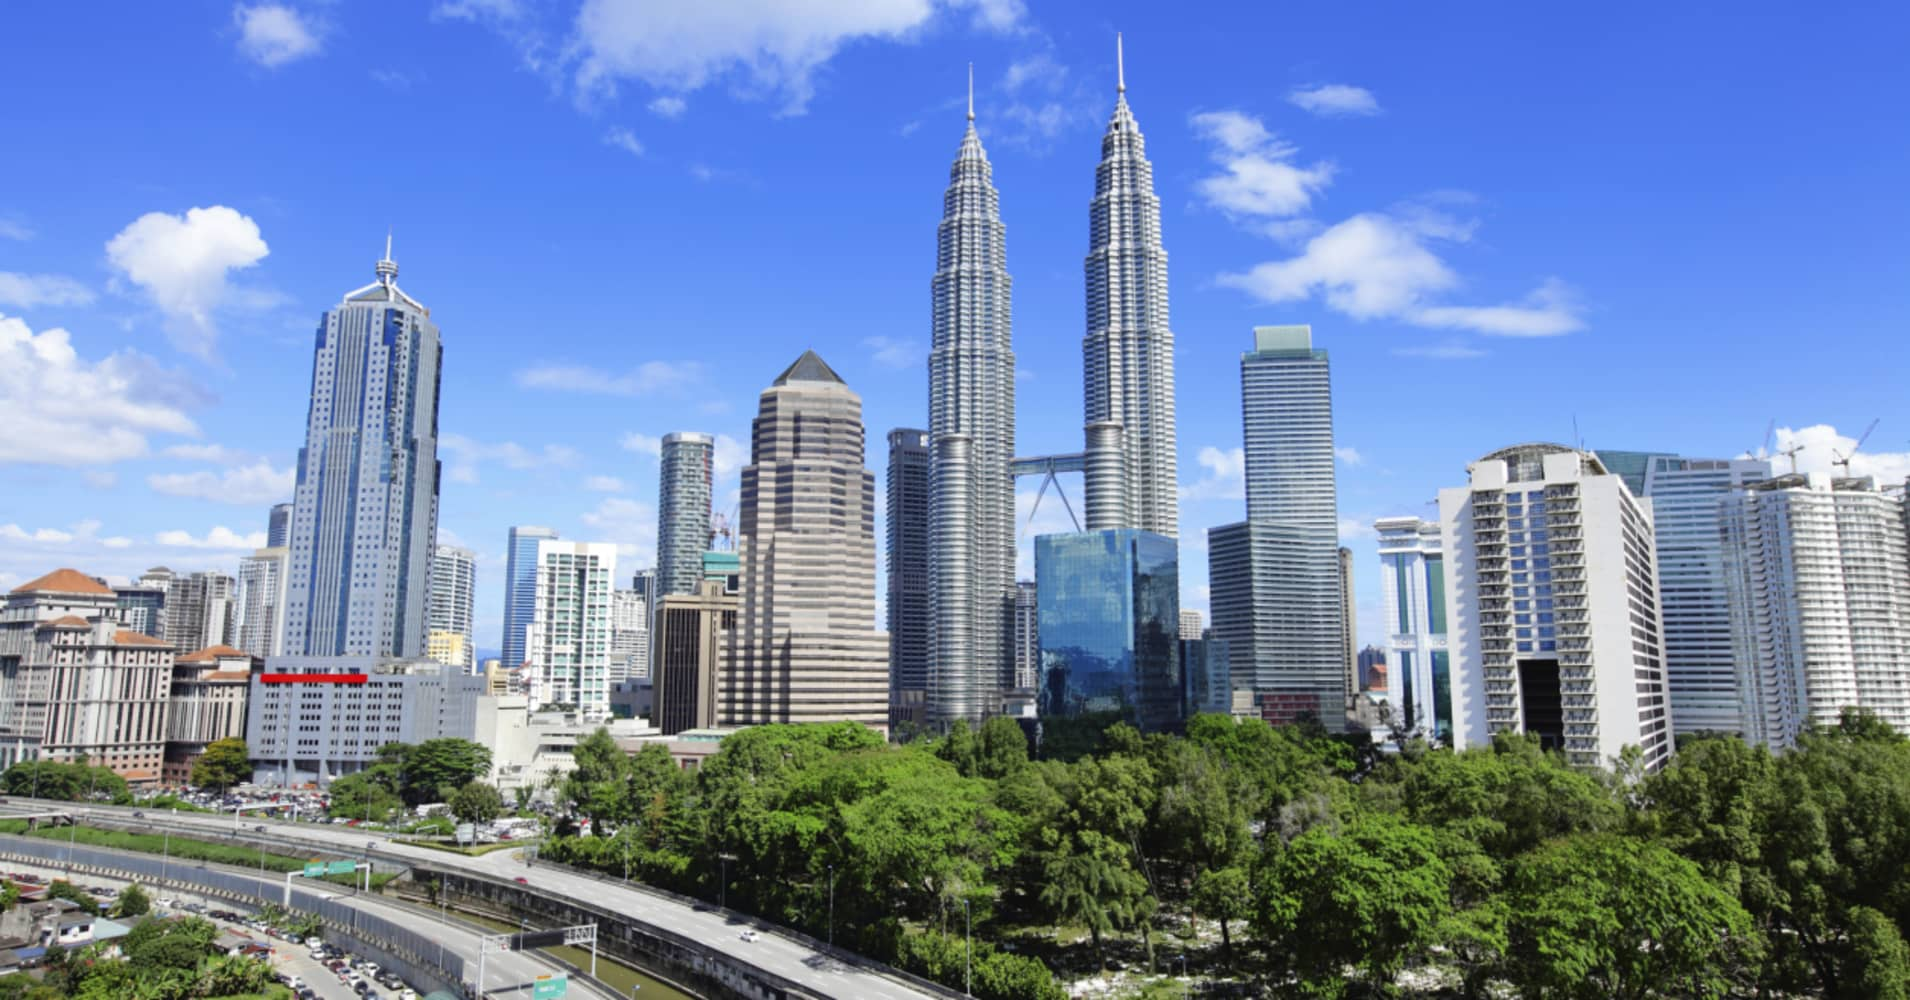 Kuala Lumpur is the most affordable city of opportunity